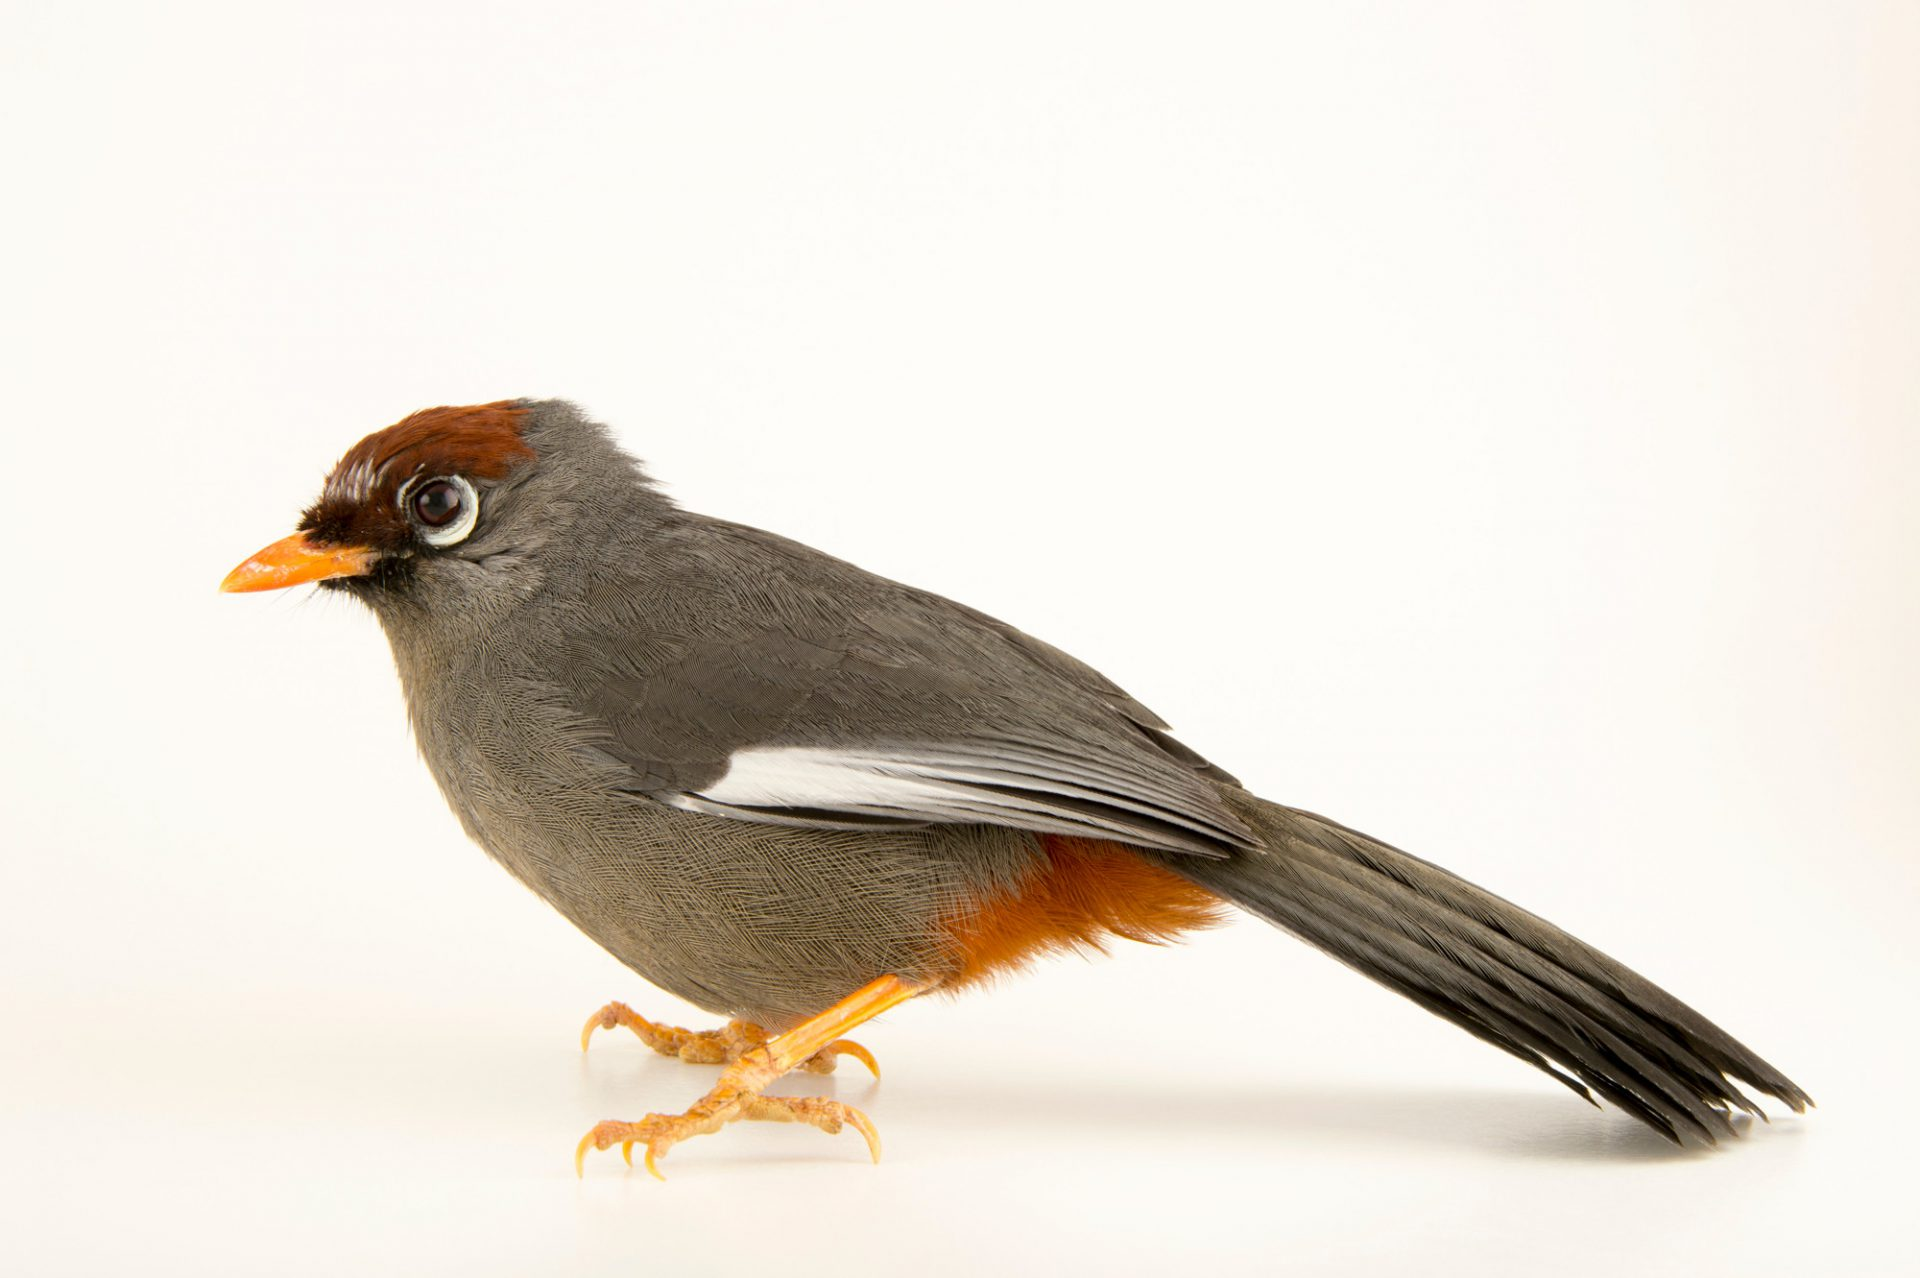 Photo: Spectacled laughingthrush (Garrulax mitratus) at the Plzen Zoo in the Czech Republic.